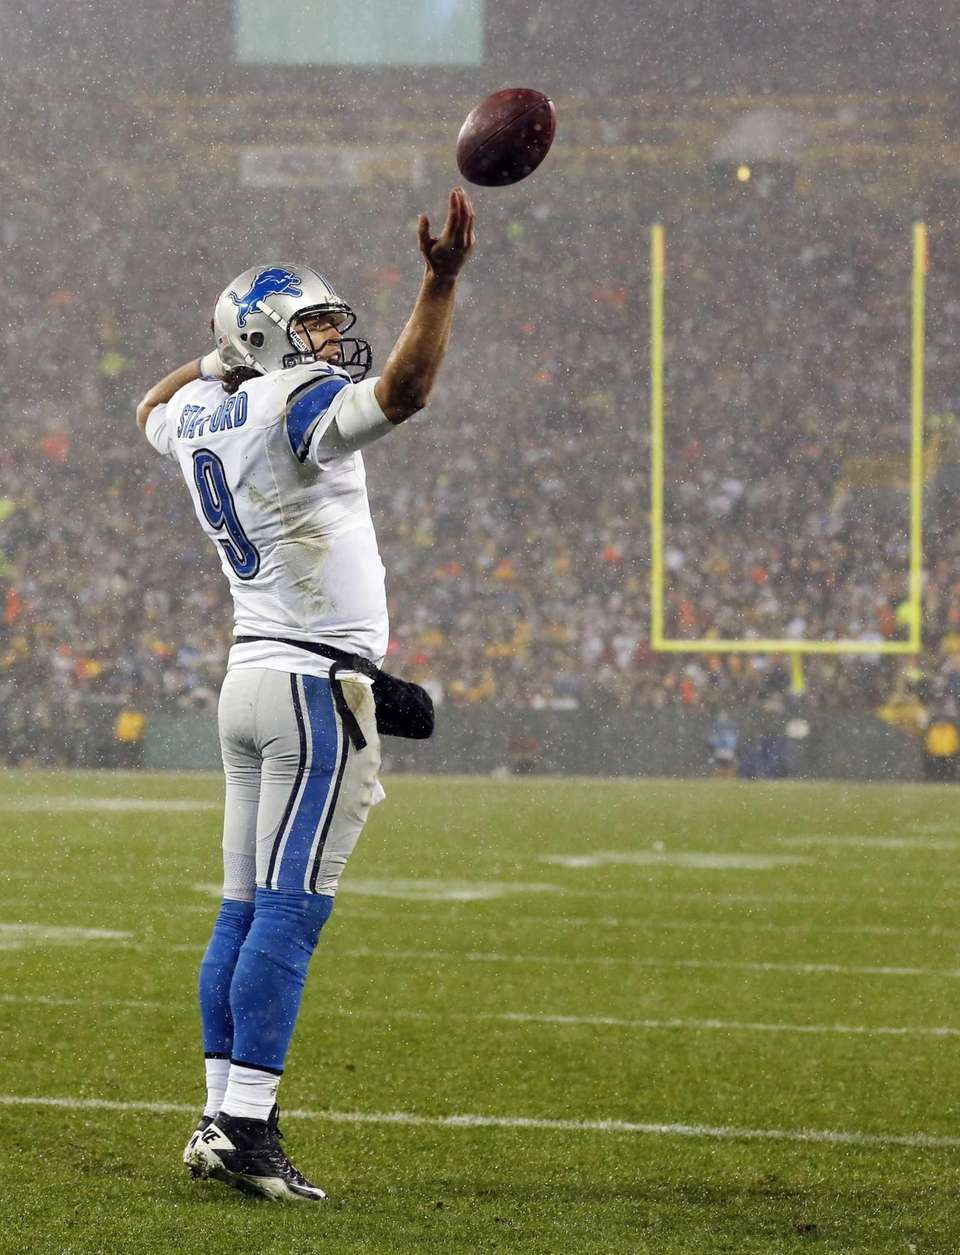 2009: MATTHEW STAFFORD, QB, Detroit Lions Injured much